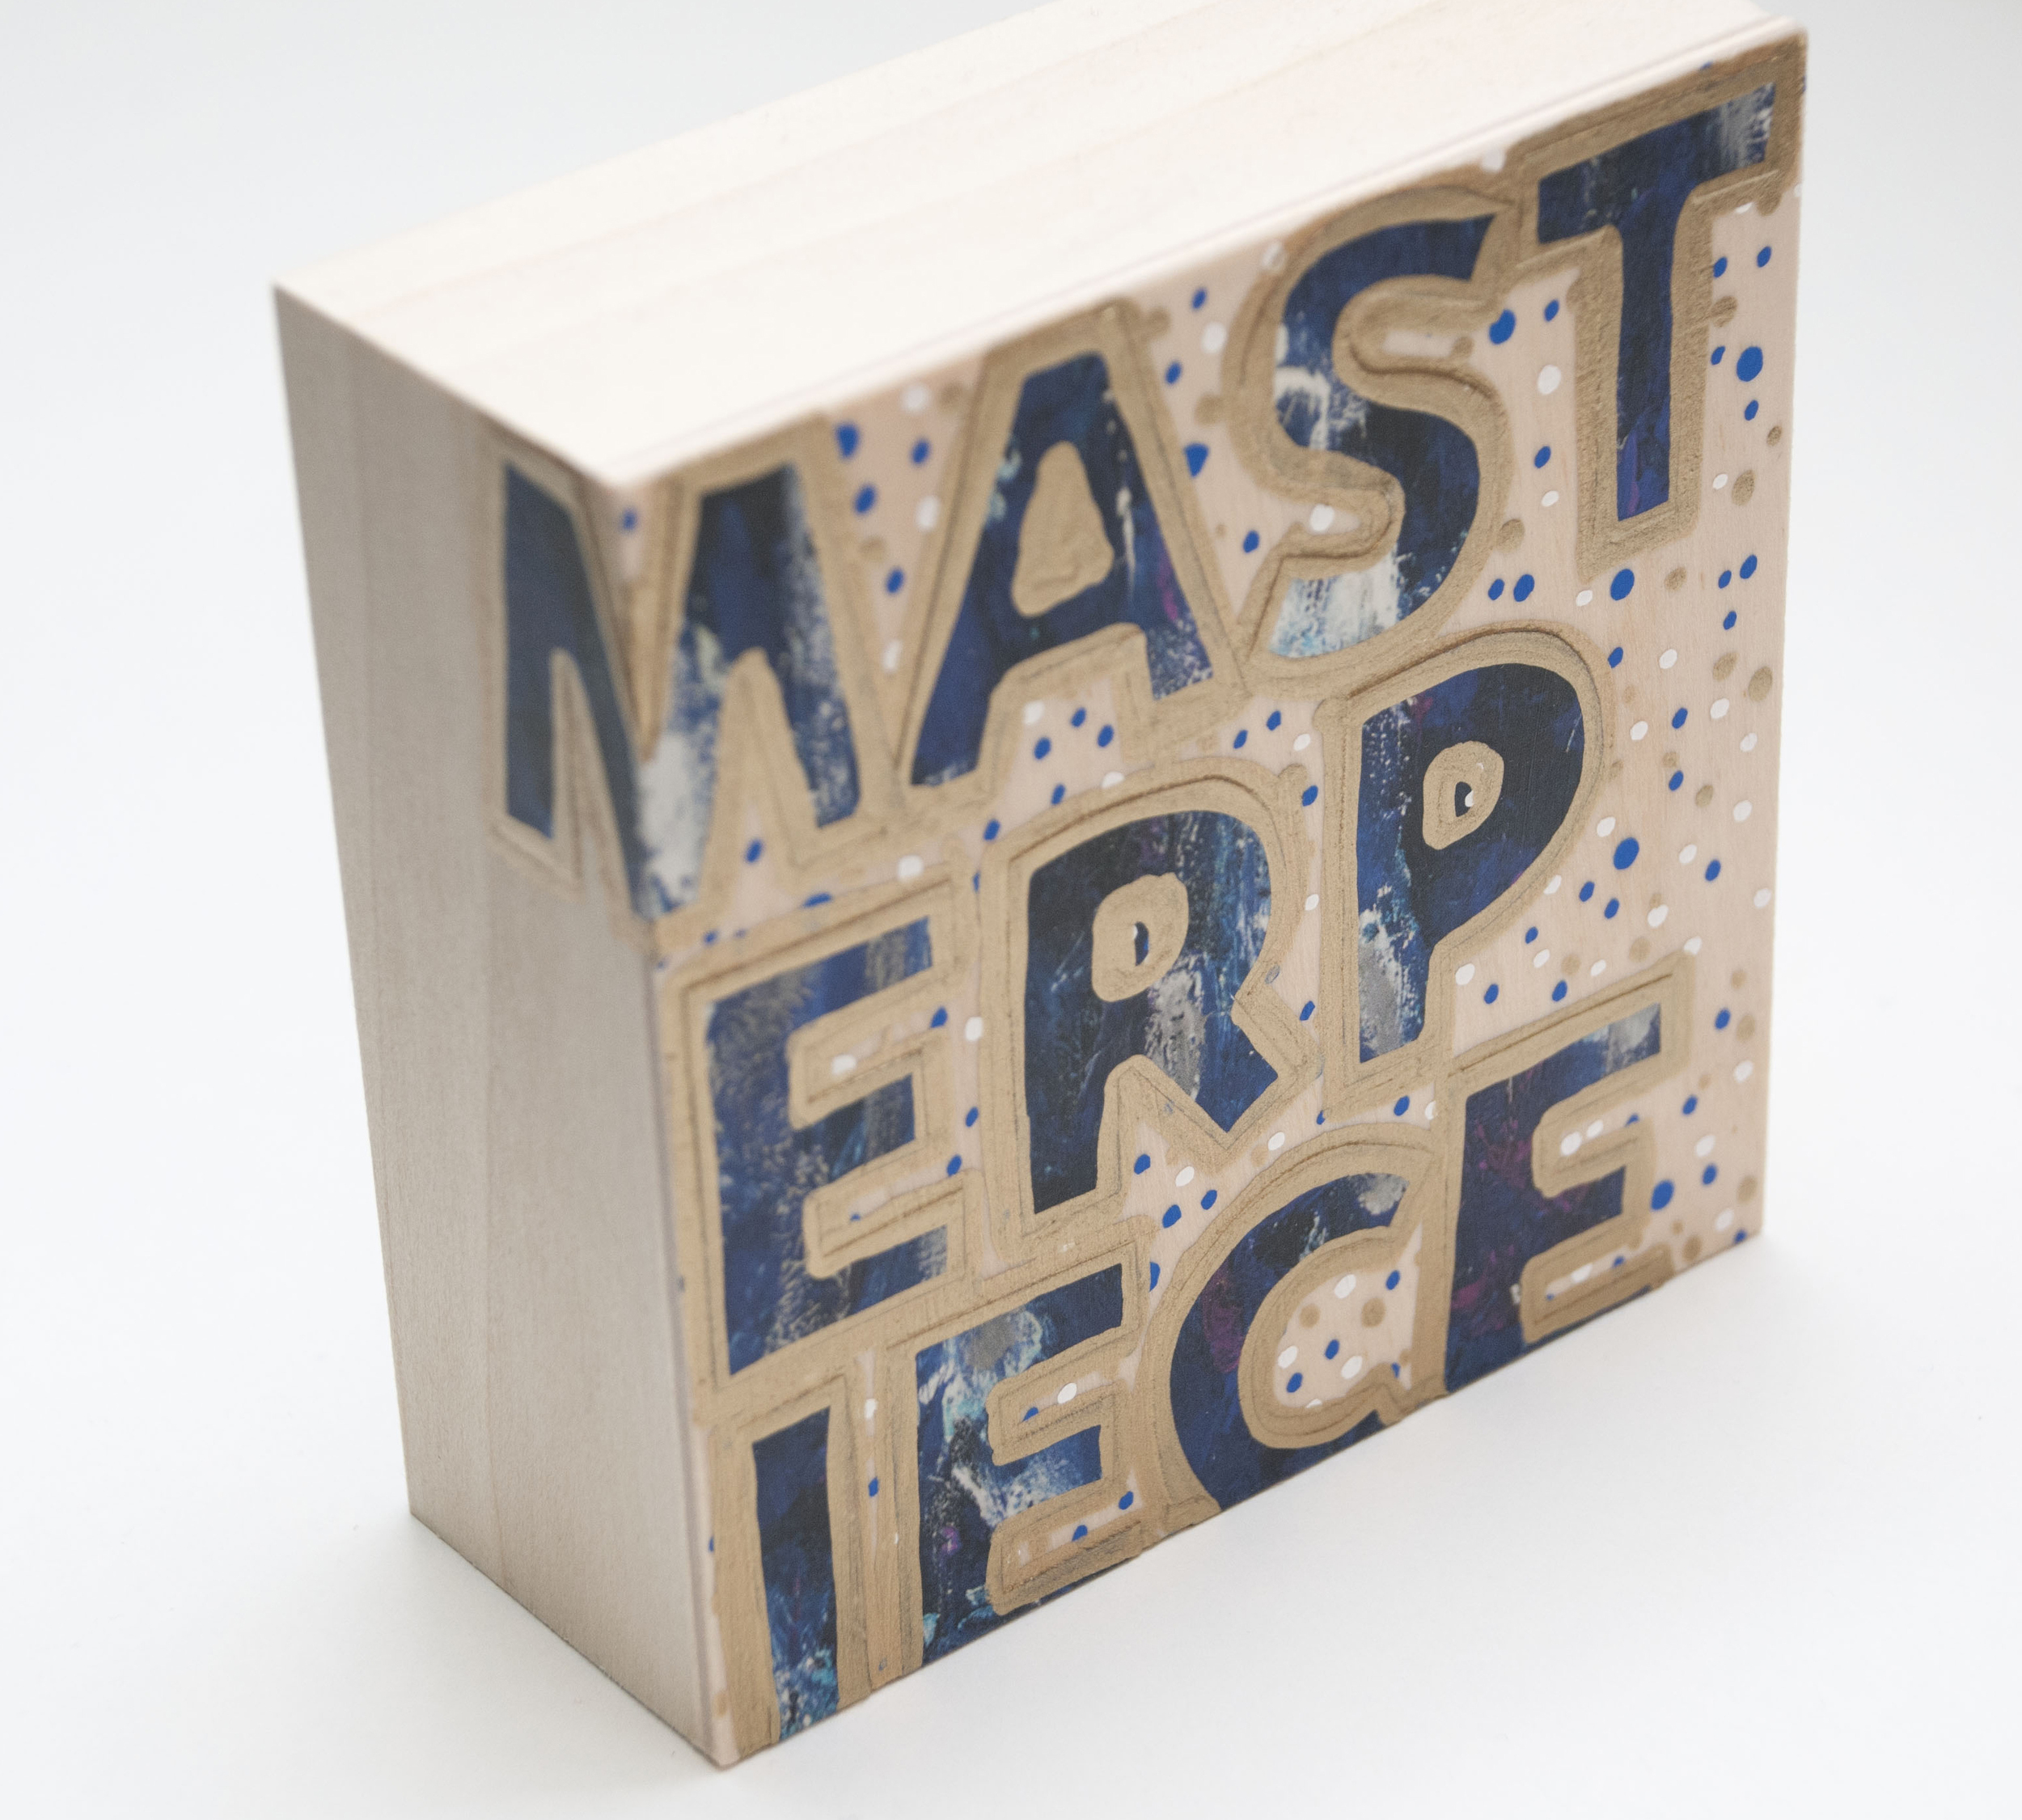 Masterpiece , 2015 Acrylic, enamel, and catalog pages on wood 4 x 4 x 1 5/8 inches